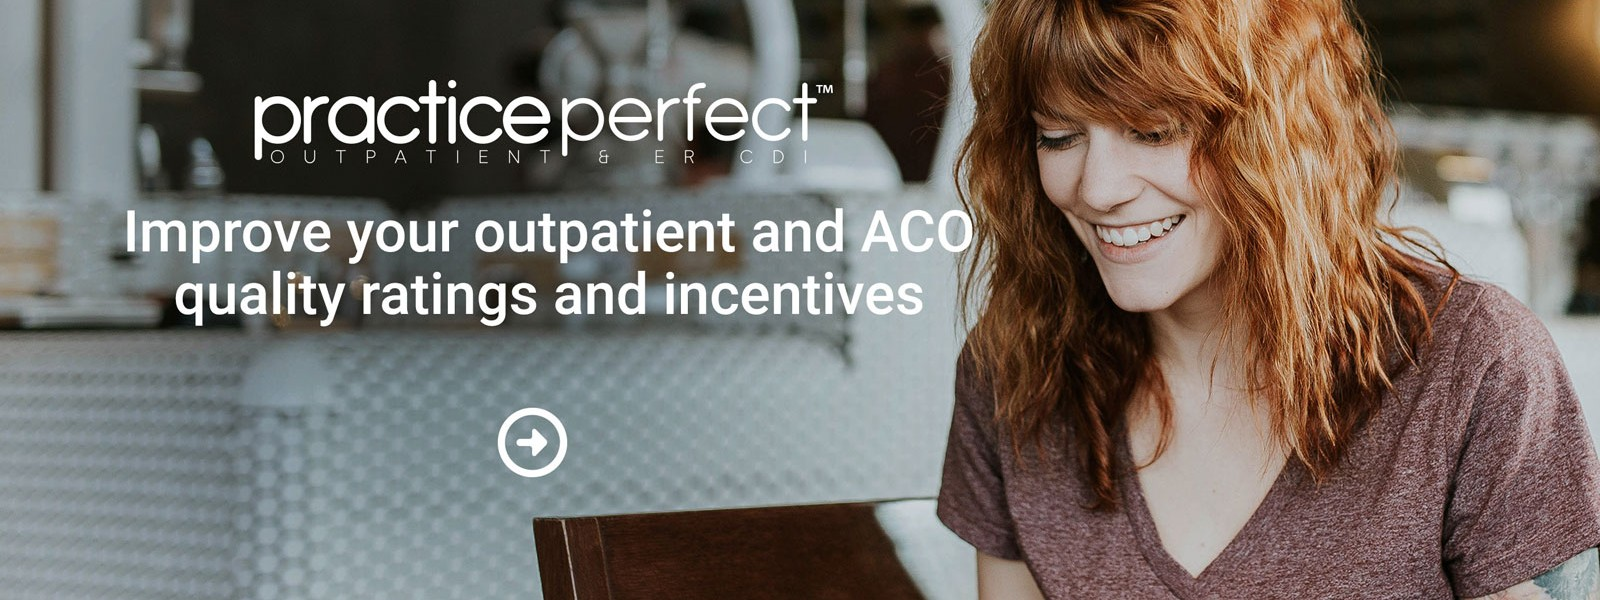 Outpatient CDI - Practice Perfect